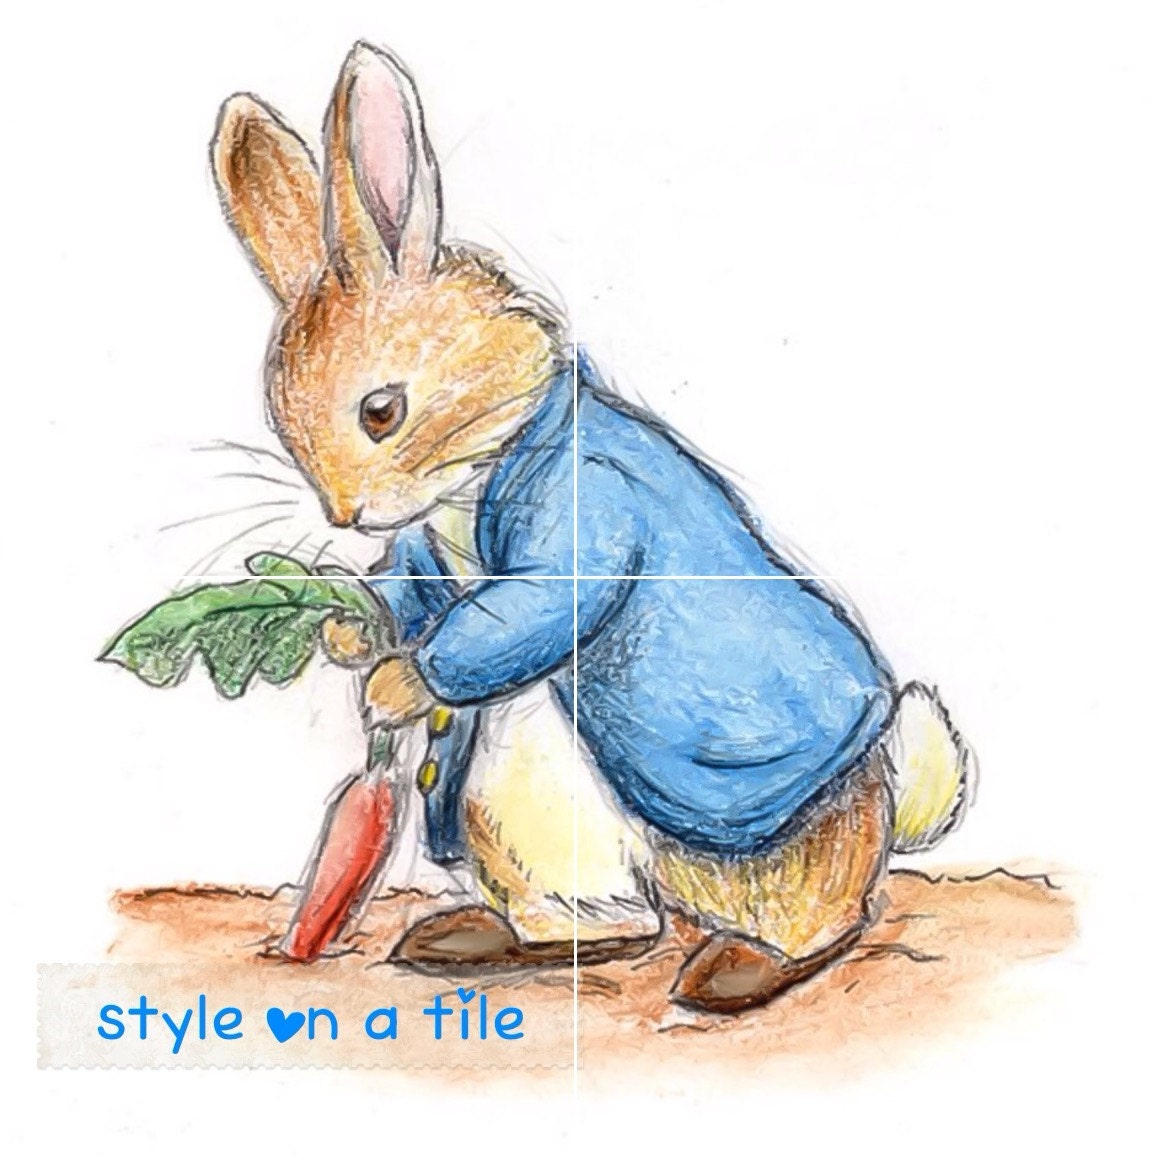 Lovely beatrix potter peter rabbit bunny 4 x 6 or 152mm ceramic lovely beatrix potter peter rabbit bunny 4 x 6 or 152mm ceramic tile mural mosaic wall art splash back dailygadgetfo Gallery